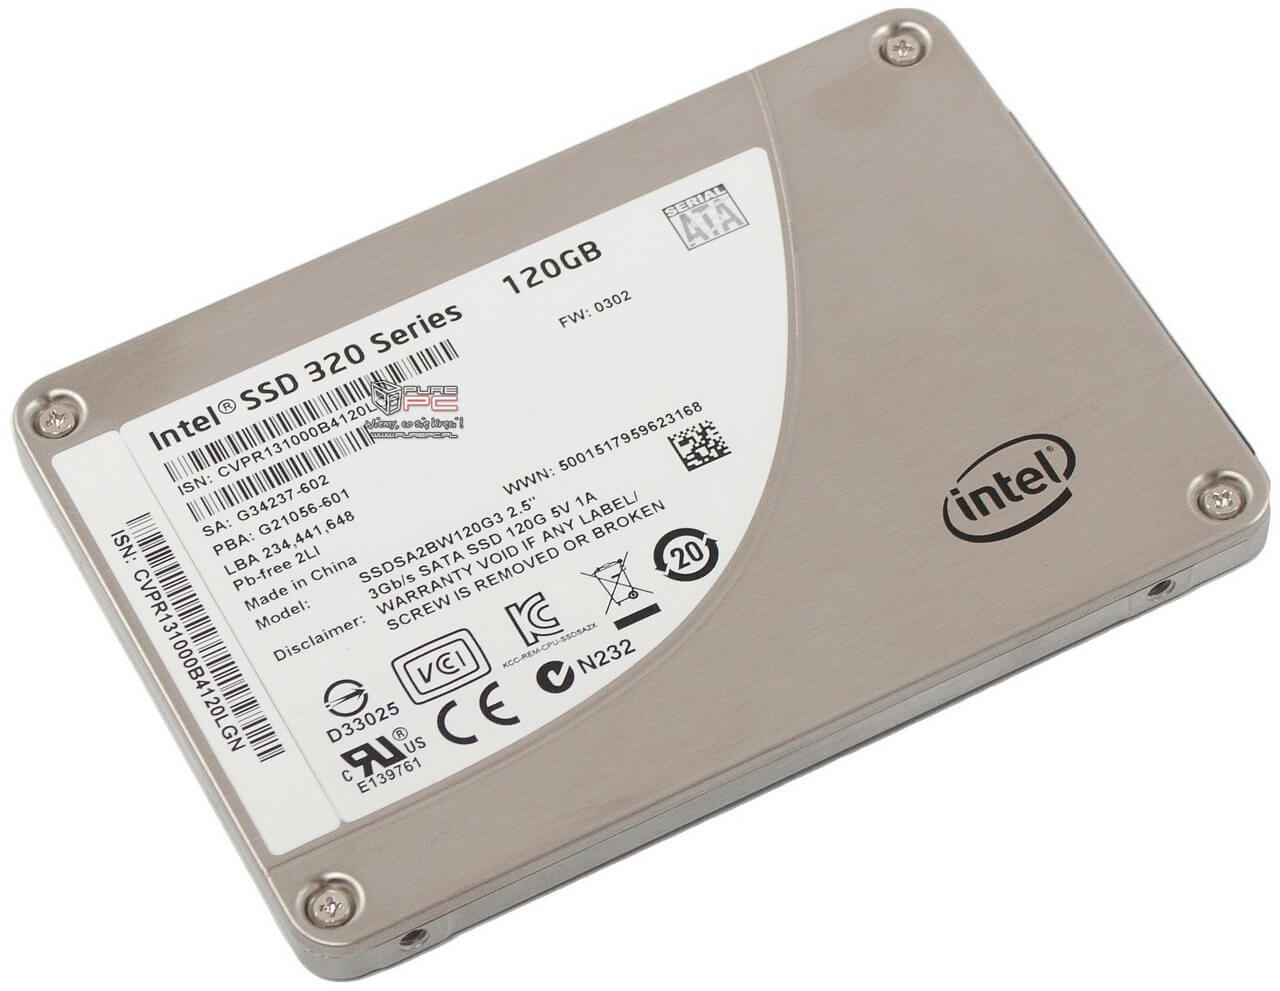 DYSK SSD INTEL SSD 320 SERIES 2.5